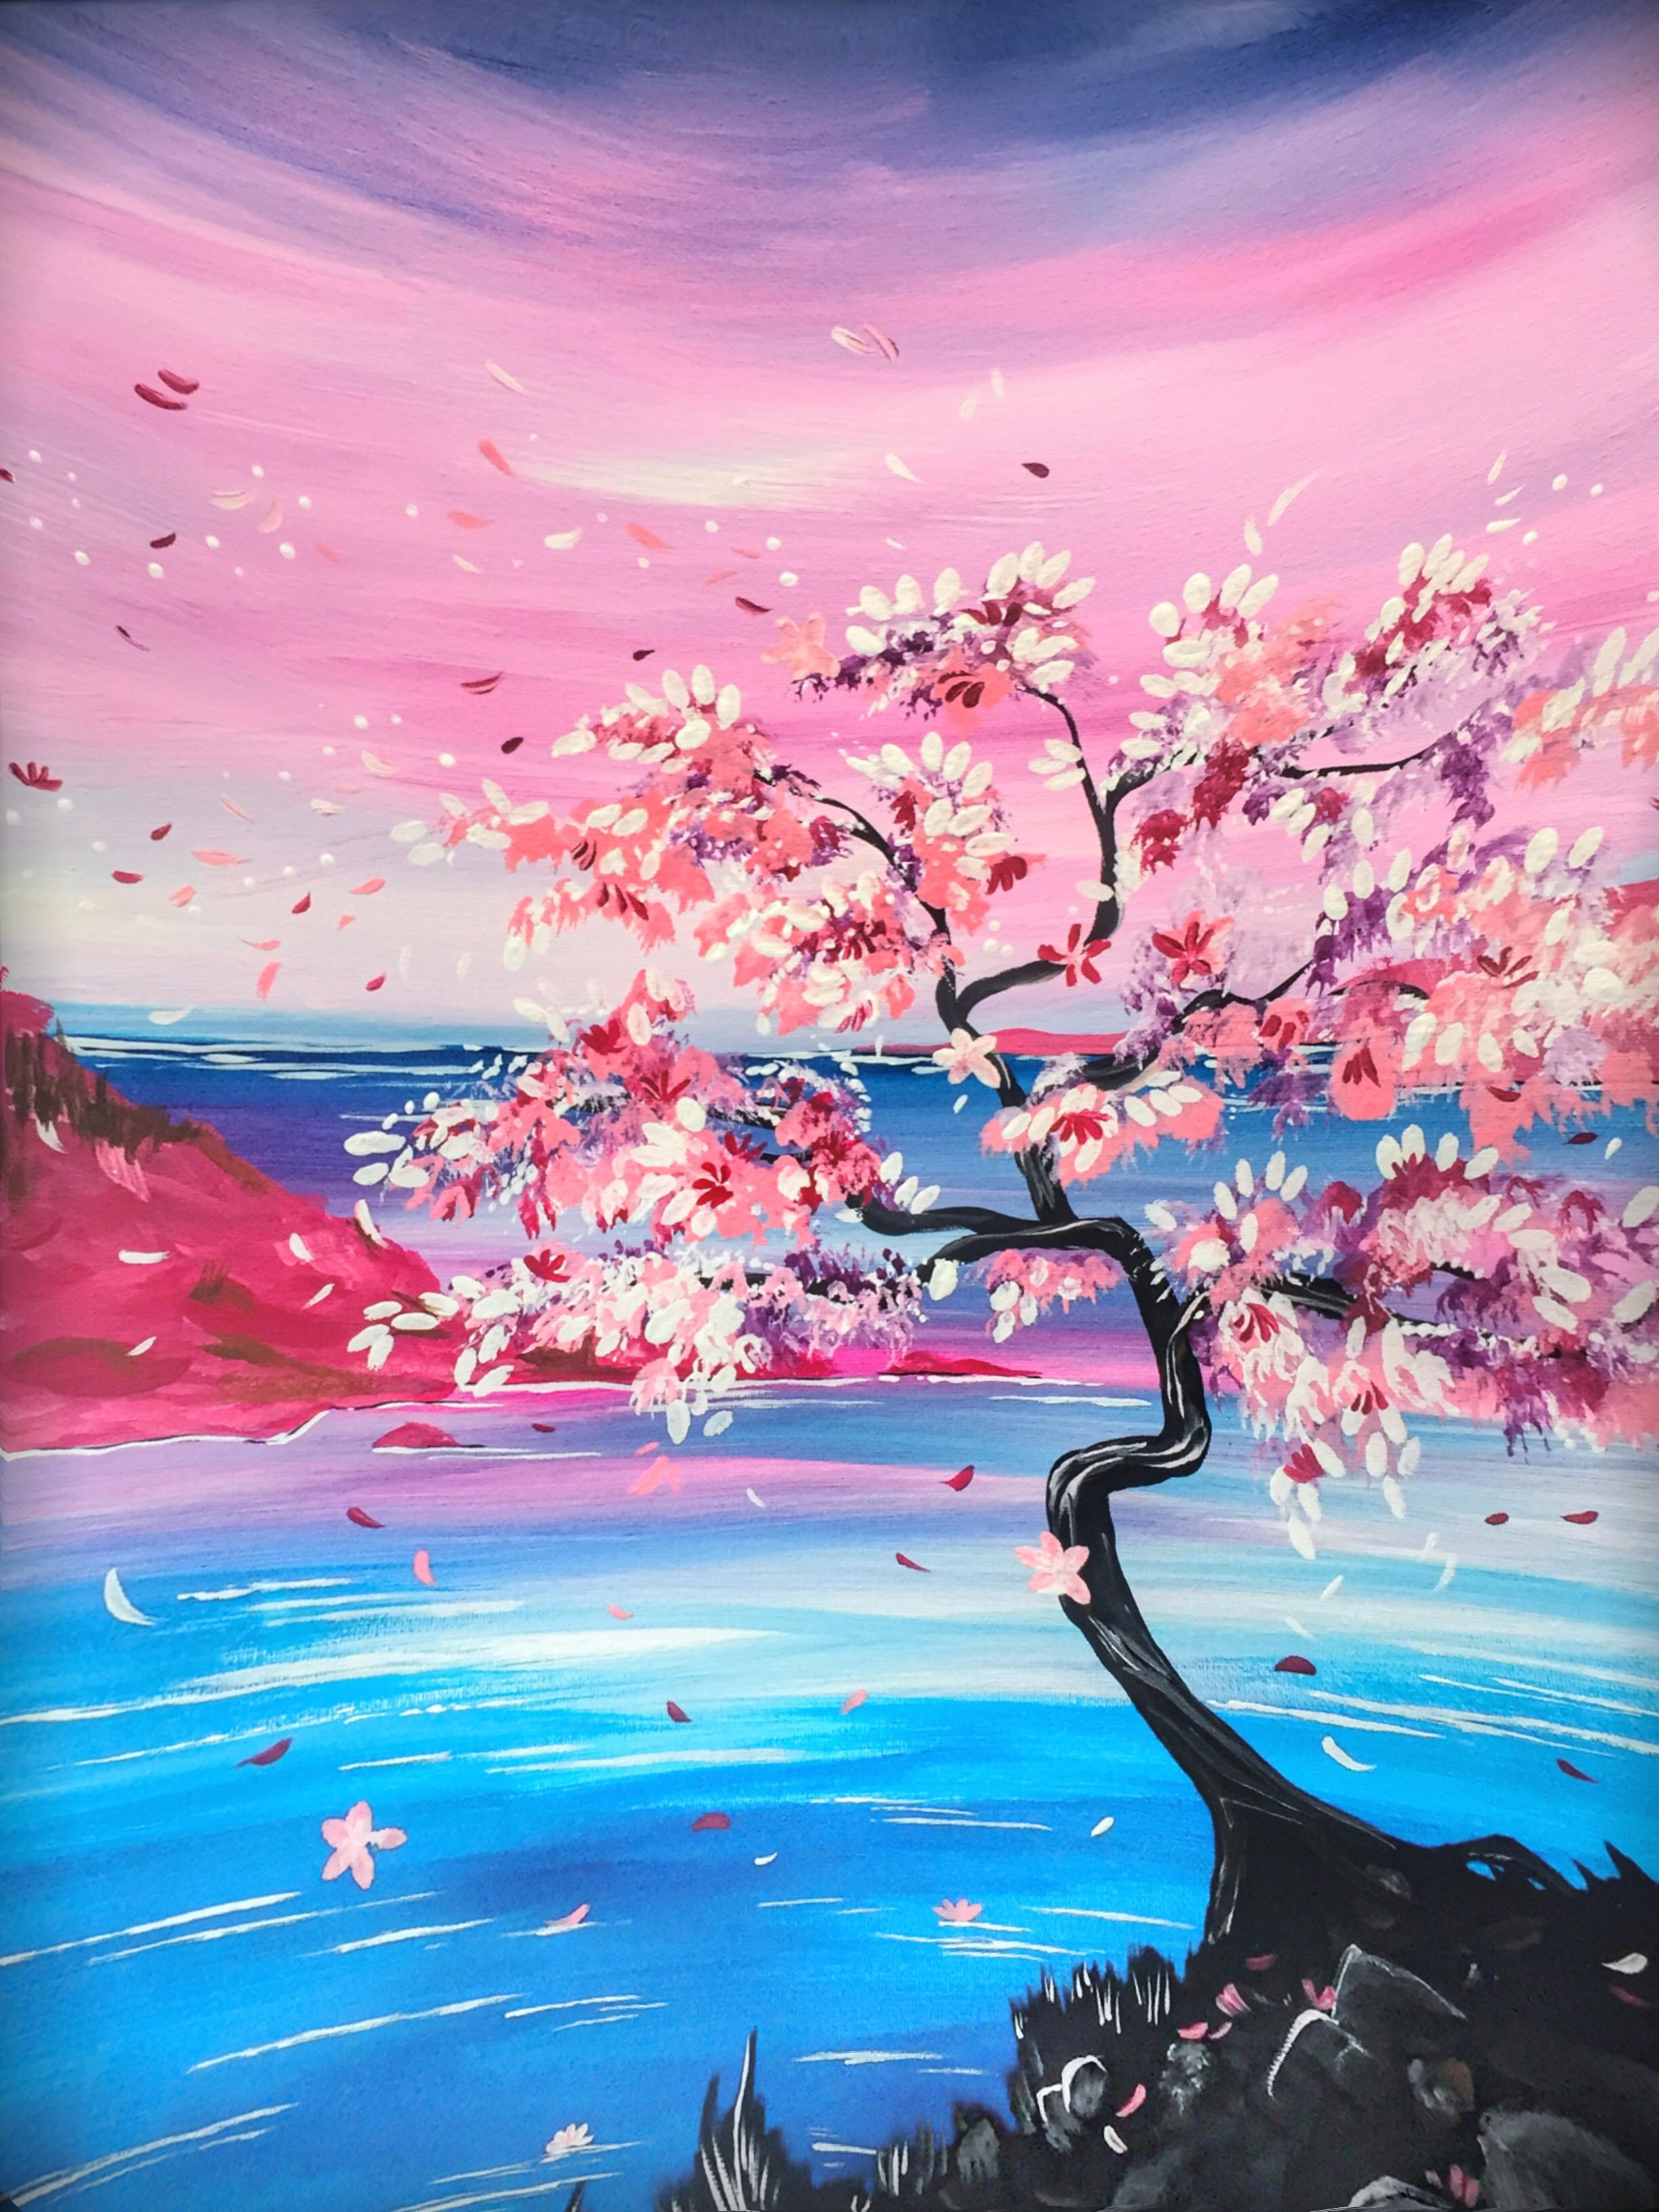 A Cherry Blossom Cove experience project by Yaymaker